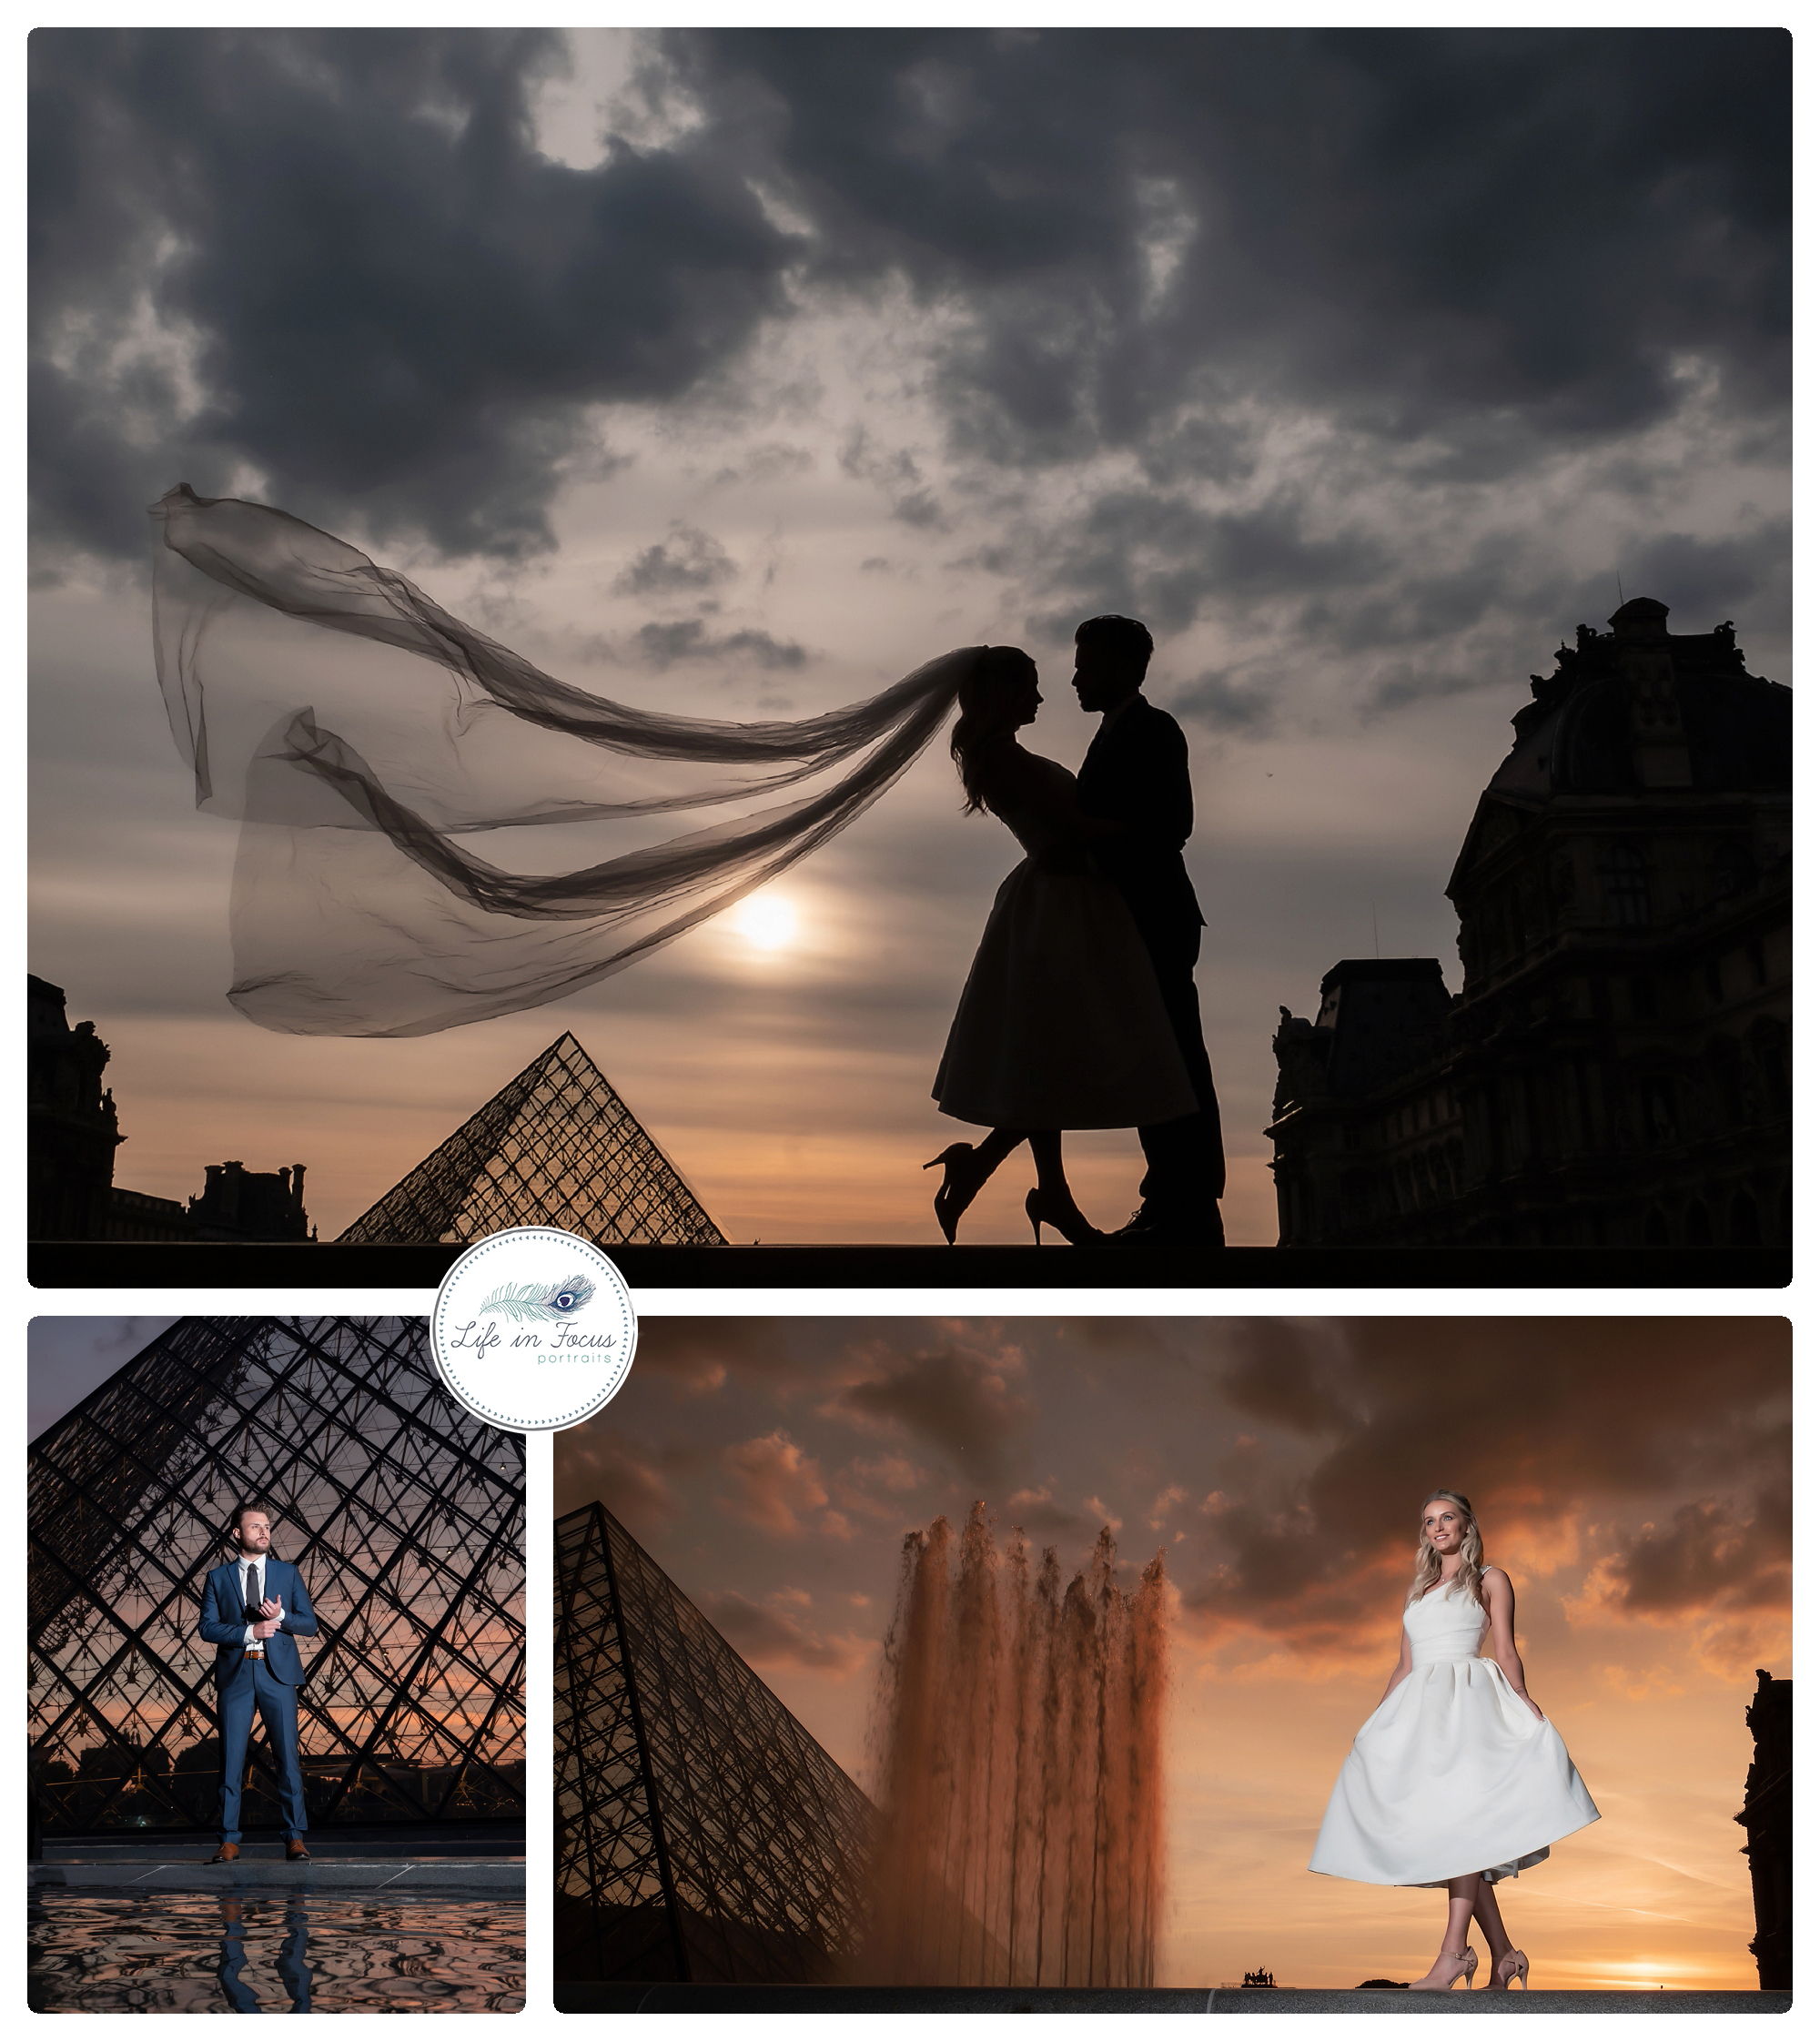 Wedding Photos at Musee De Louvre-Paris Destination Wedding photography Life in Focus Portraits Och Lomond wedding photography